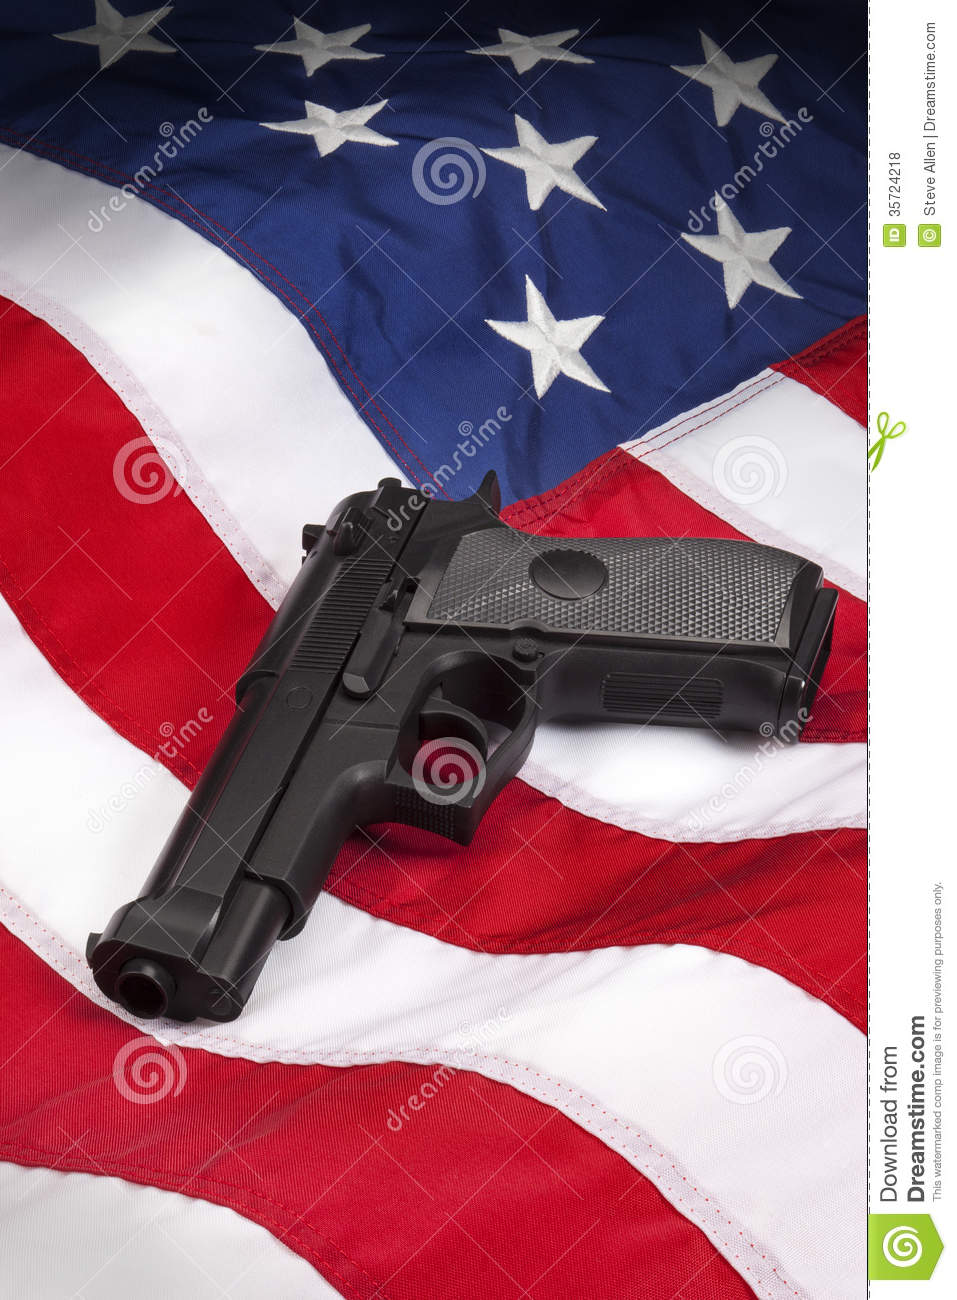 America - Gun Laws stock photo  Image of united, unlawful